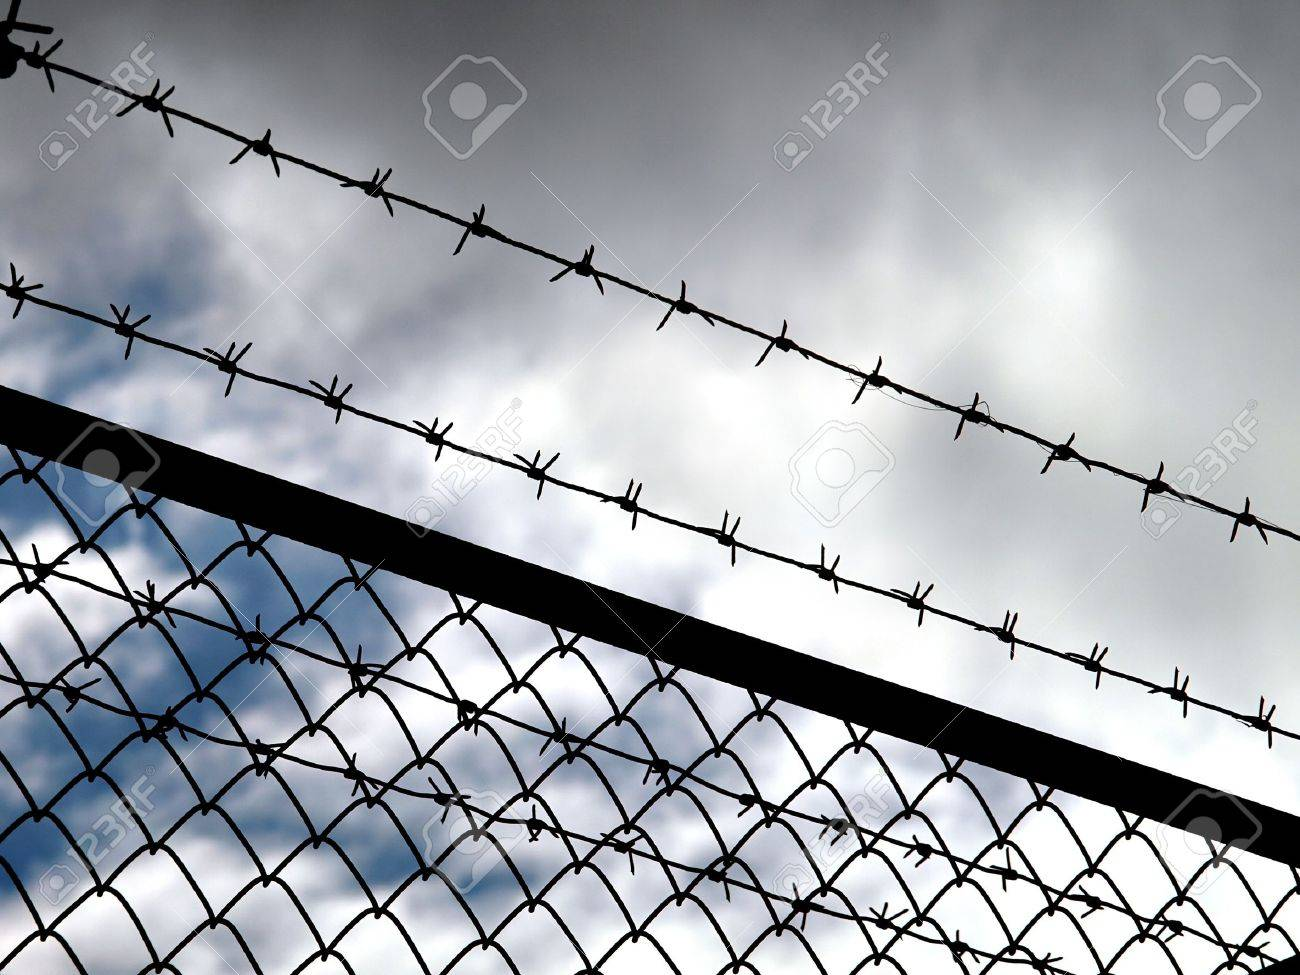 Barbed Wire Fence With Dark Clouds In Background - Imprisonment ...